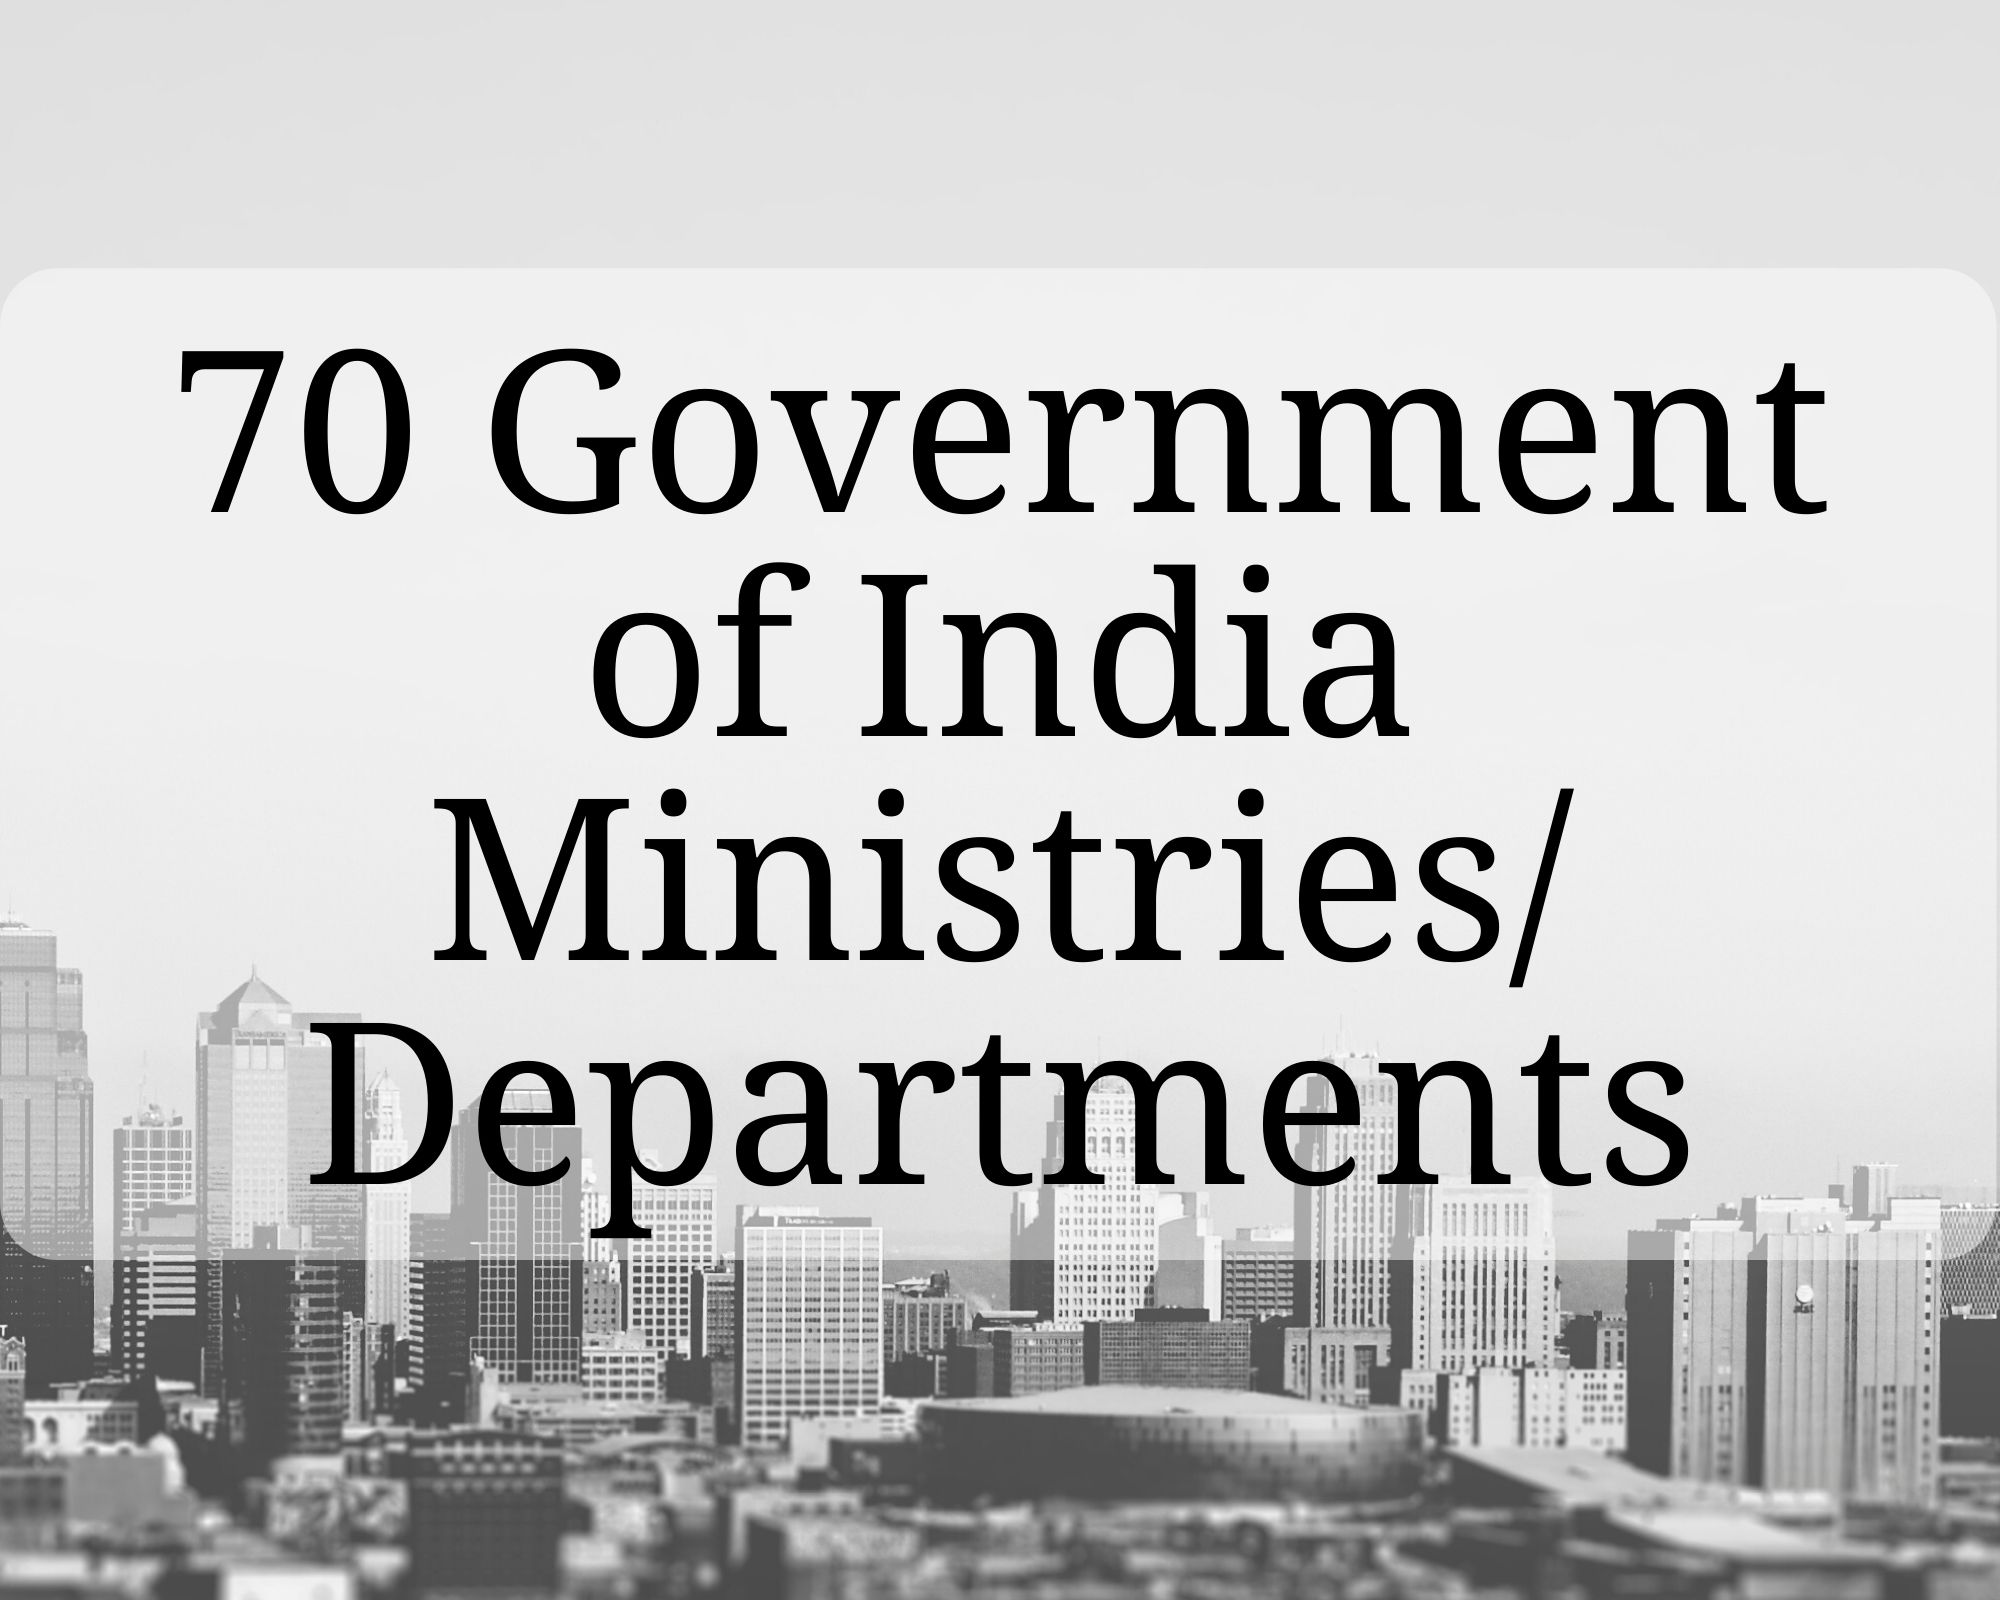 Governement Ministries